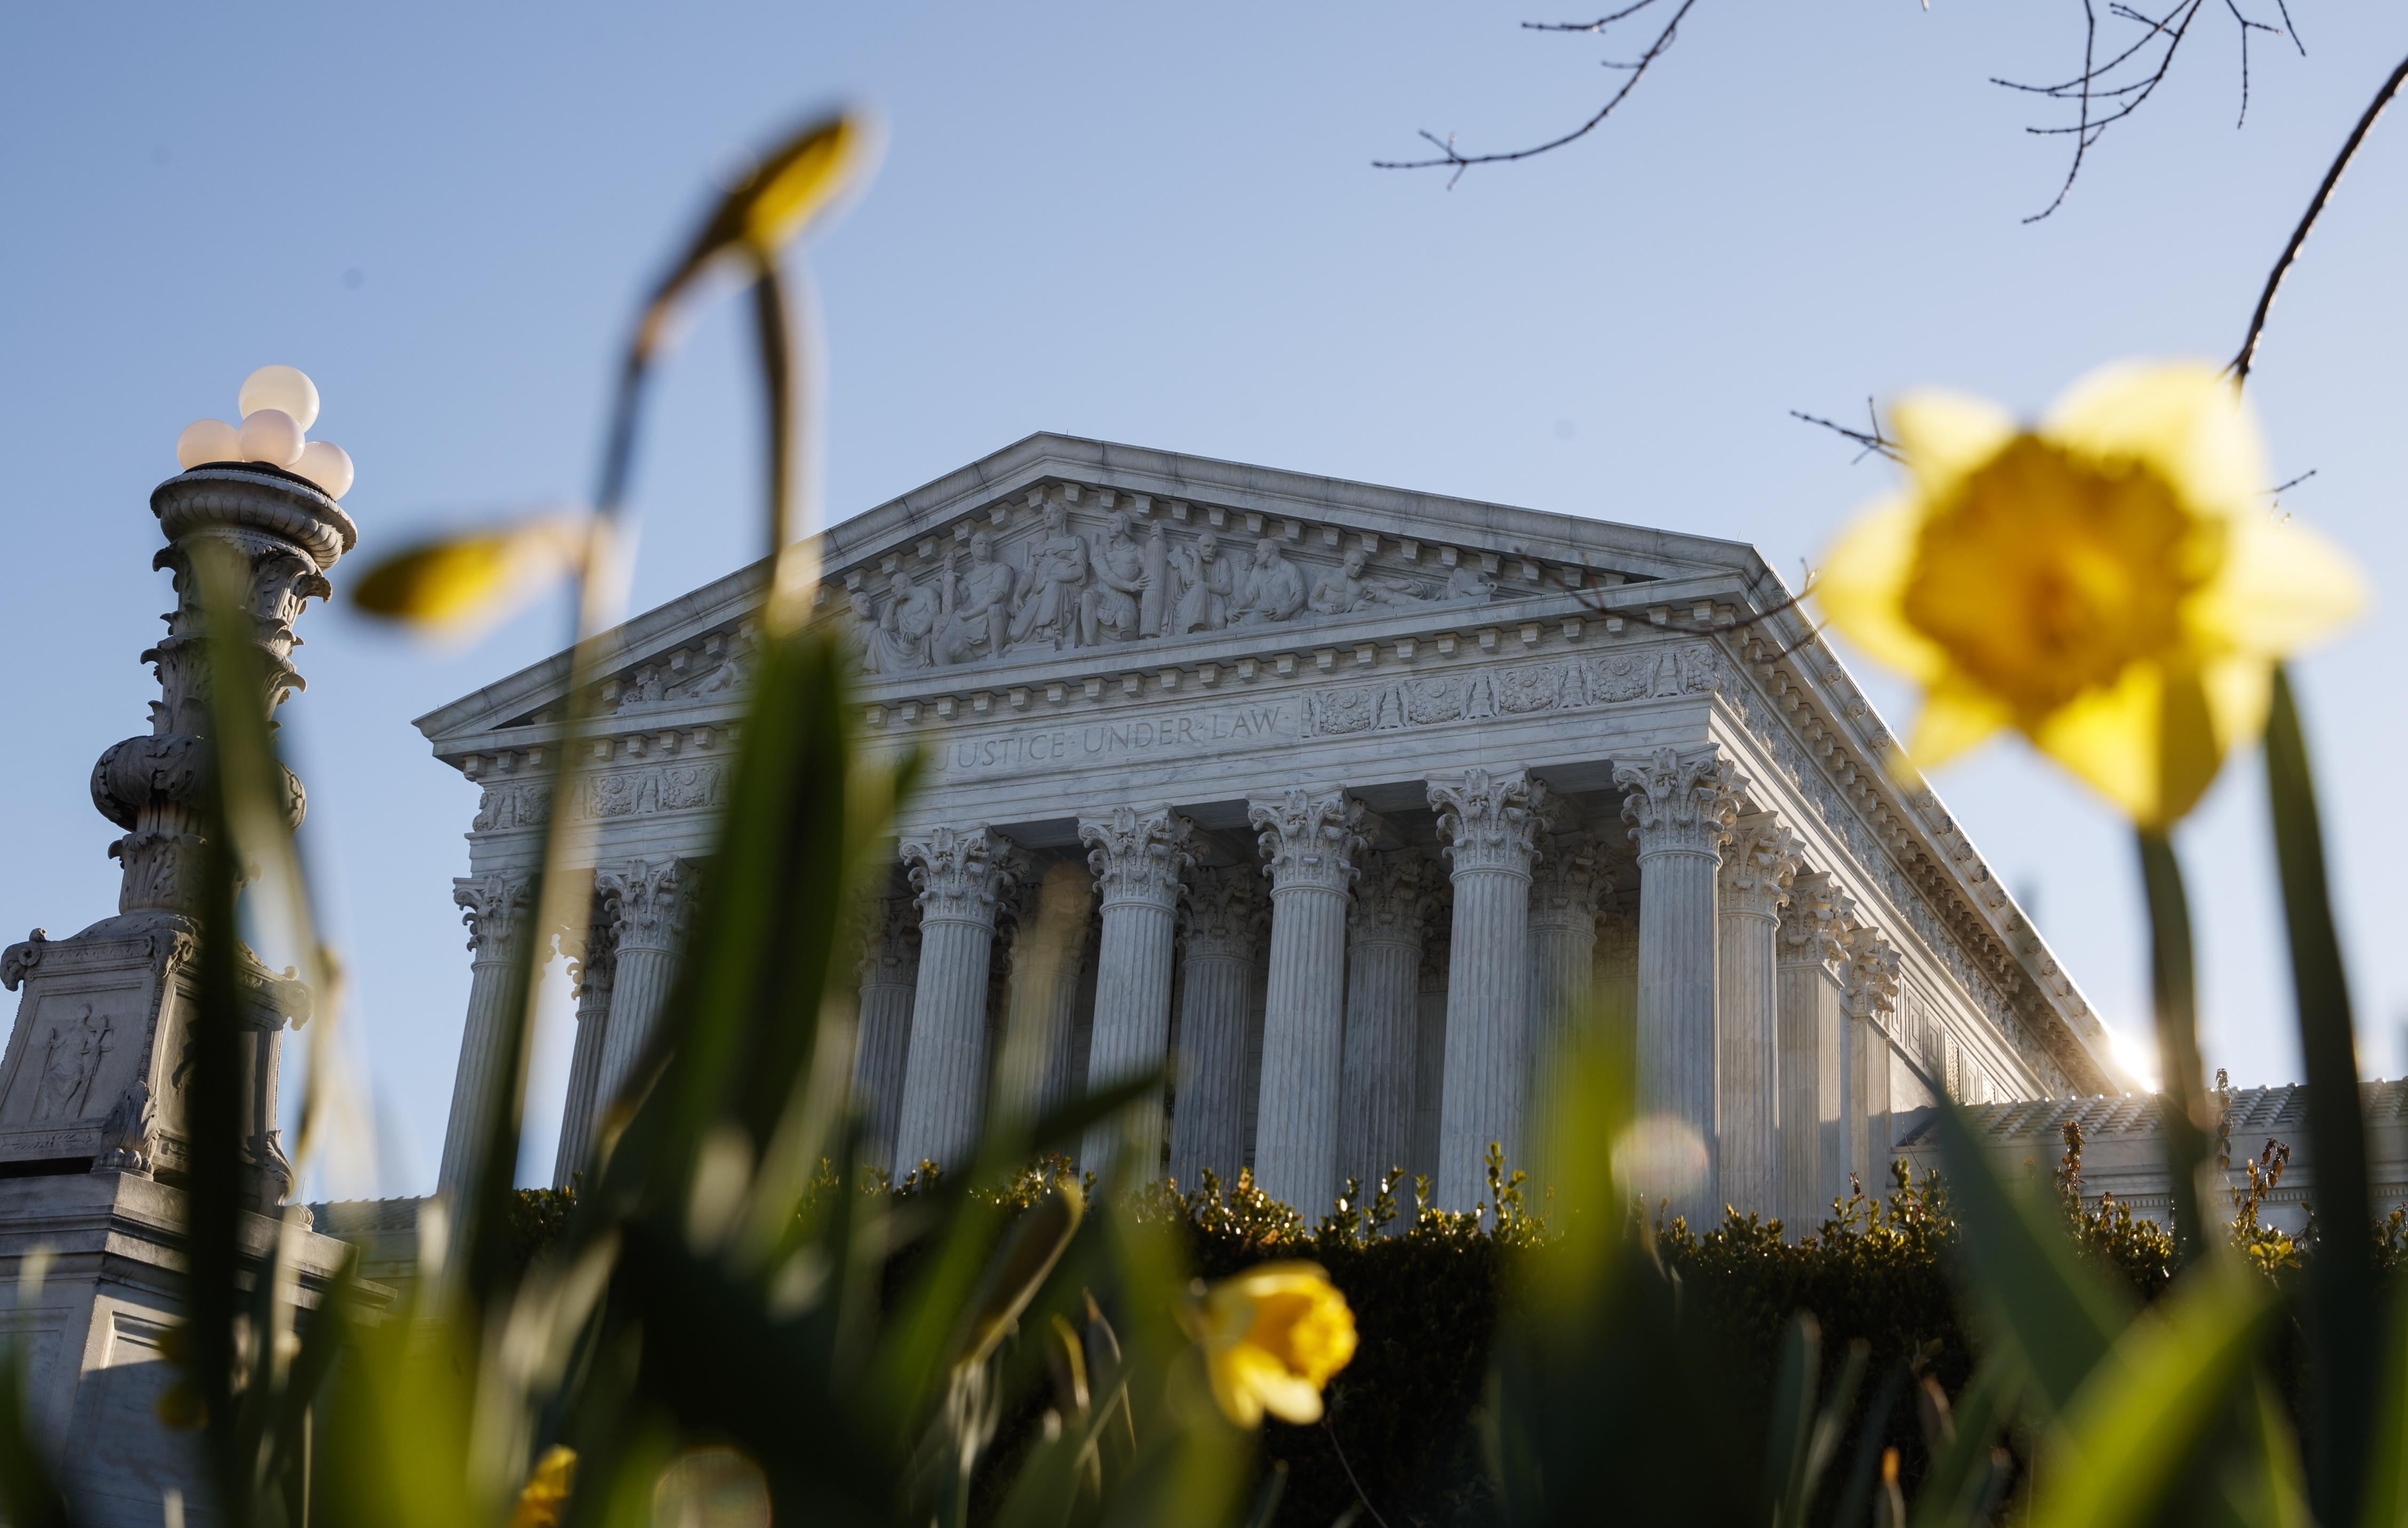 Supreme Court asked to settle census citizenship fight